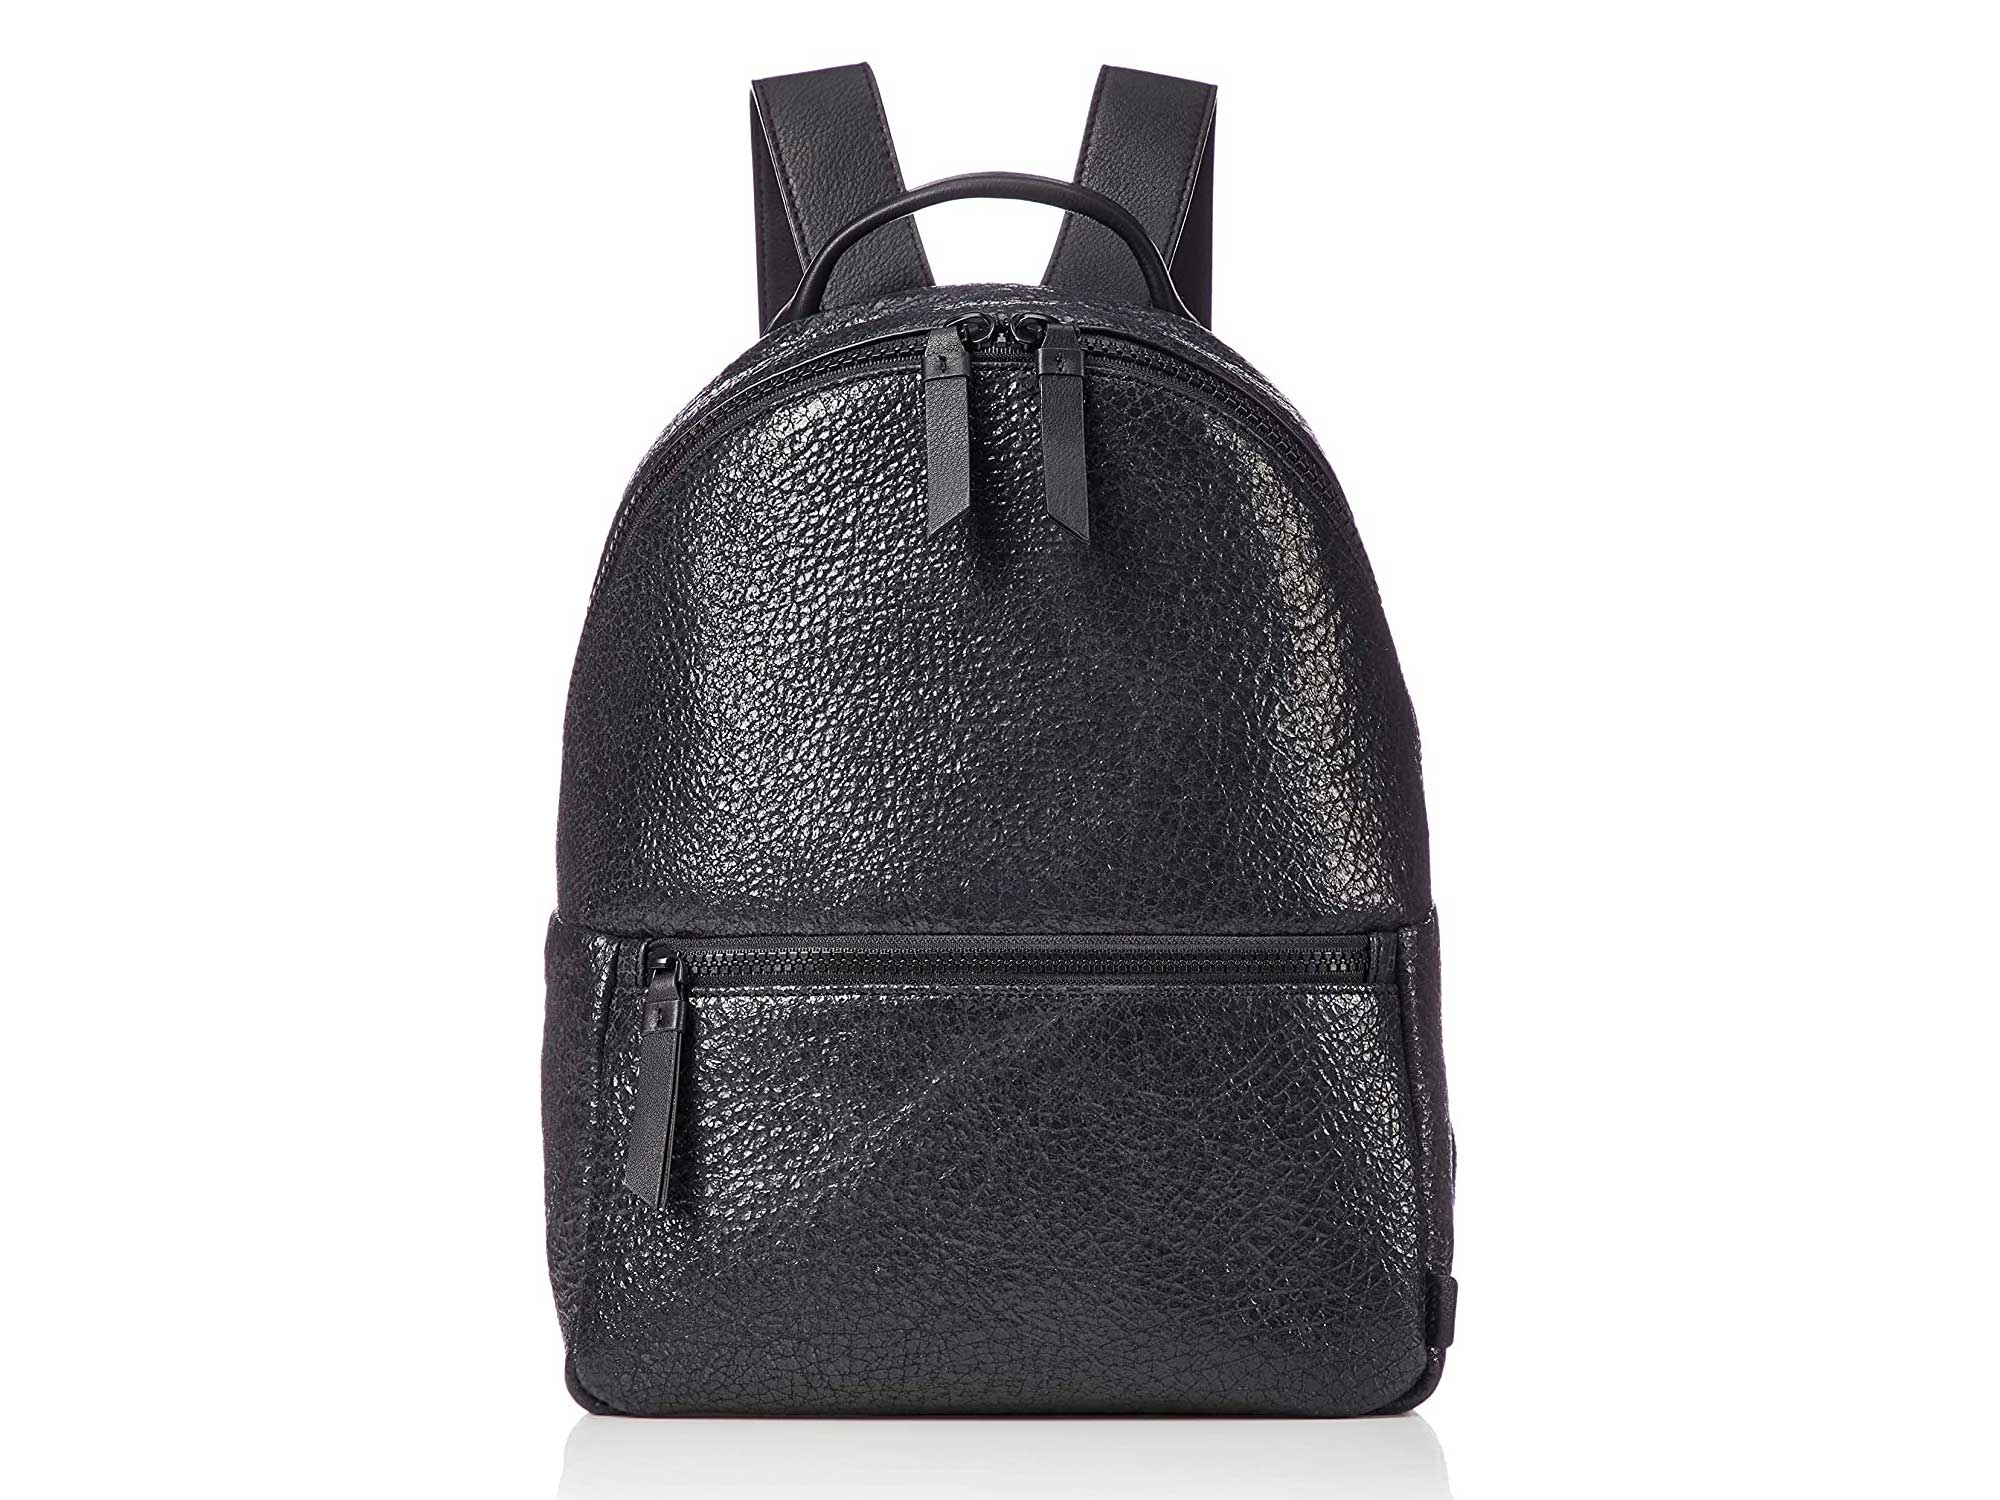 ECCO SP 3 Black Leather Backpack